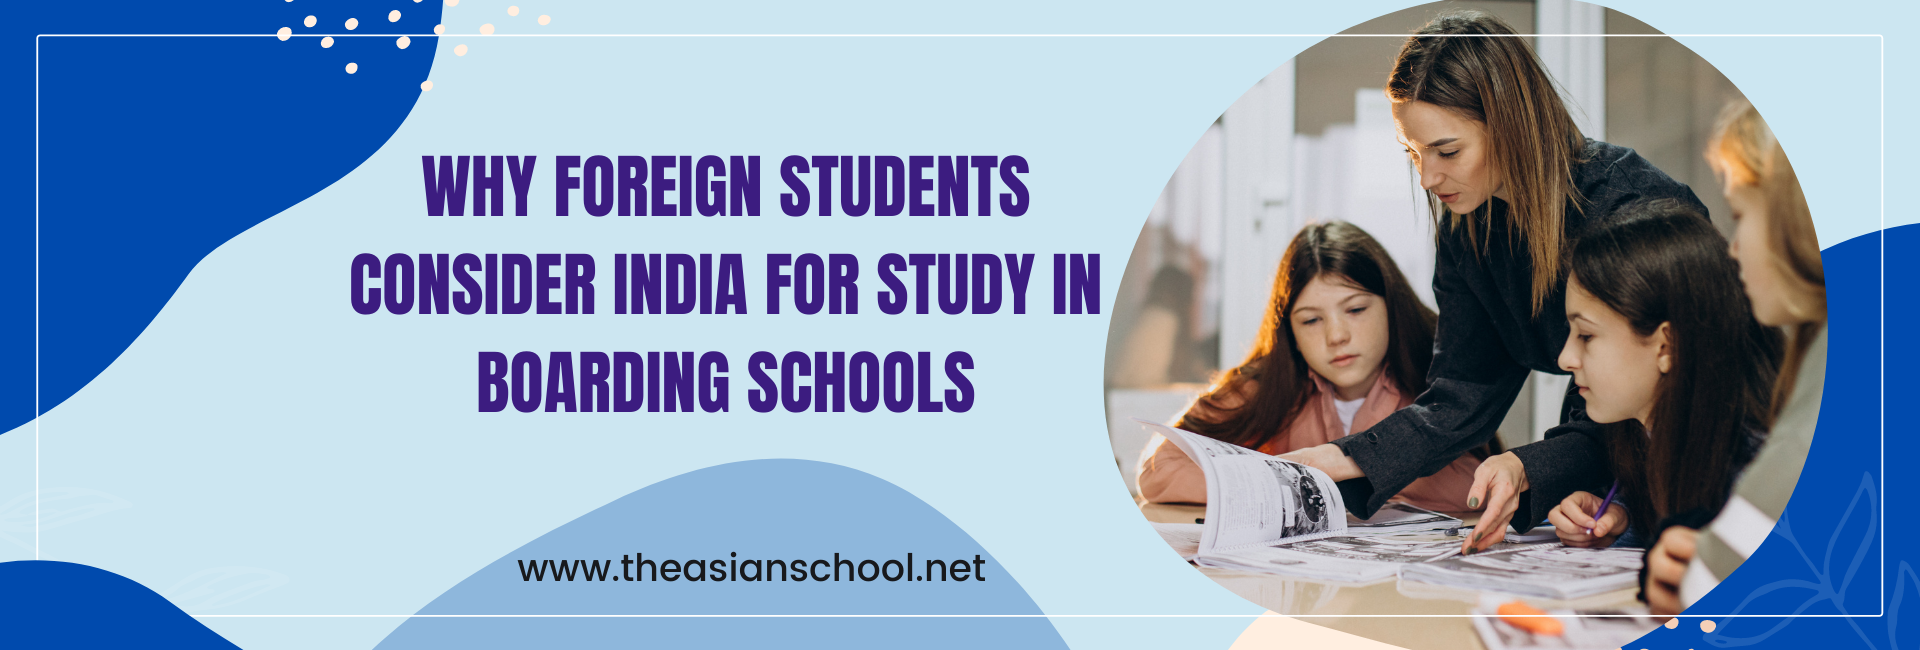 Why Foreign Students Consider India For Study In Boarding Schools